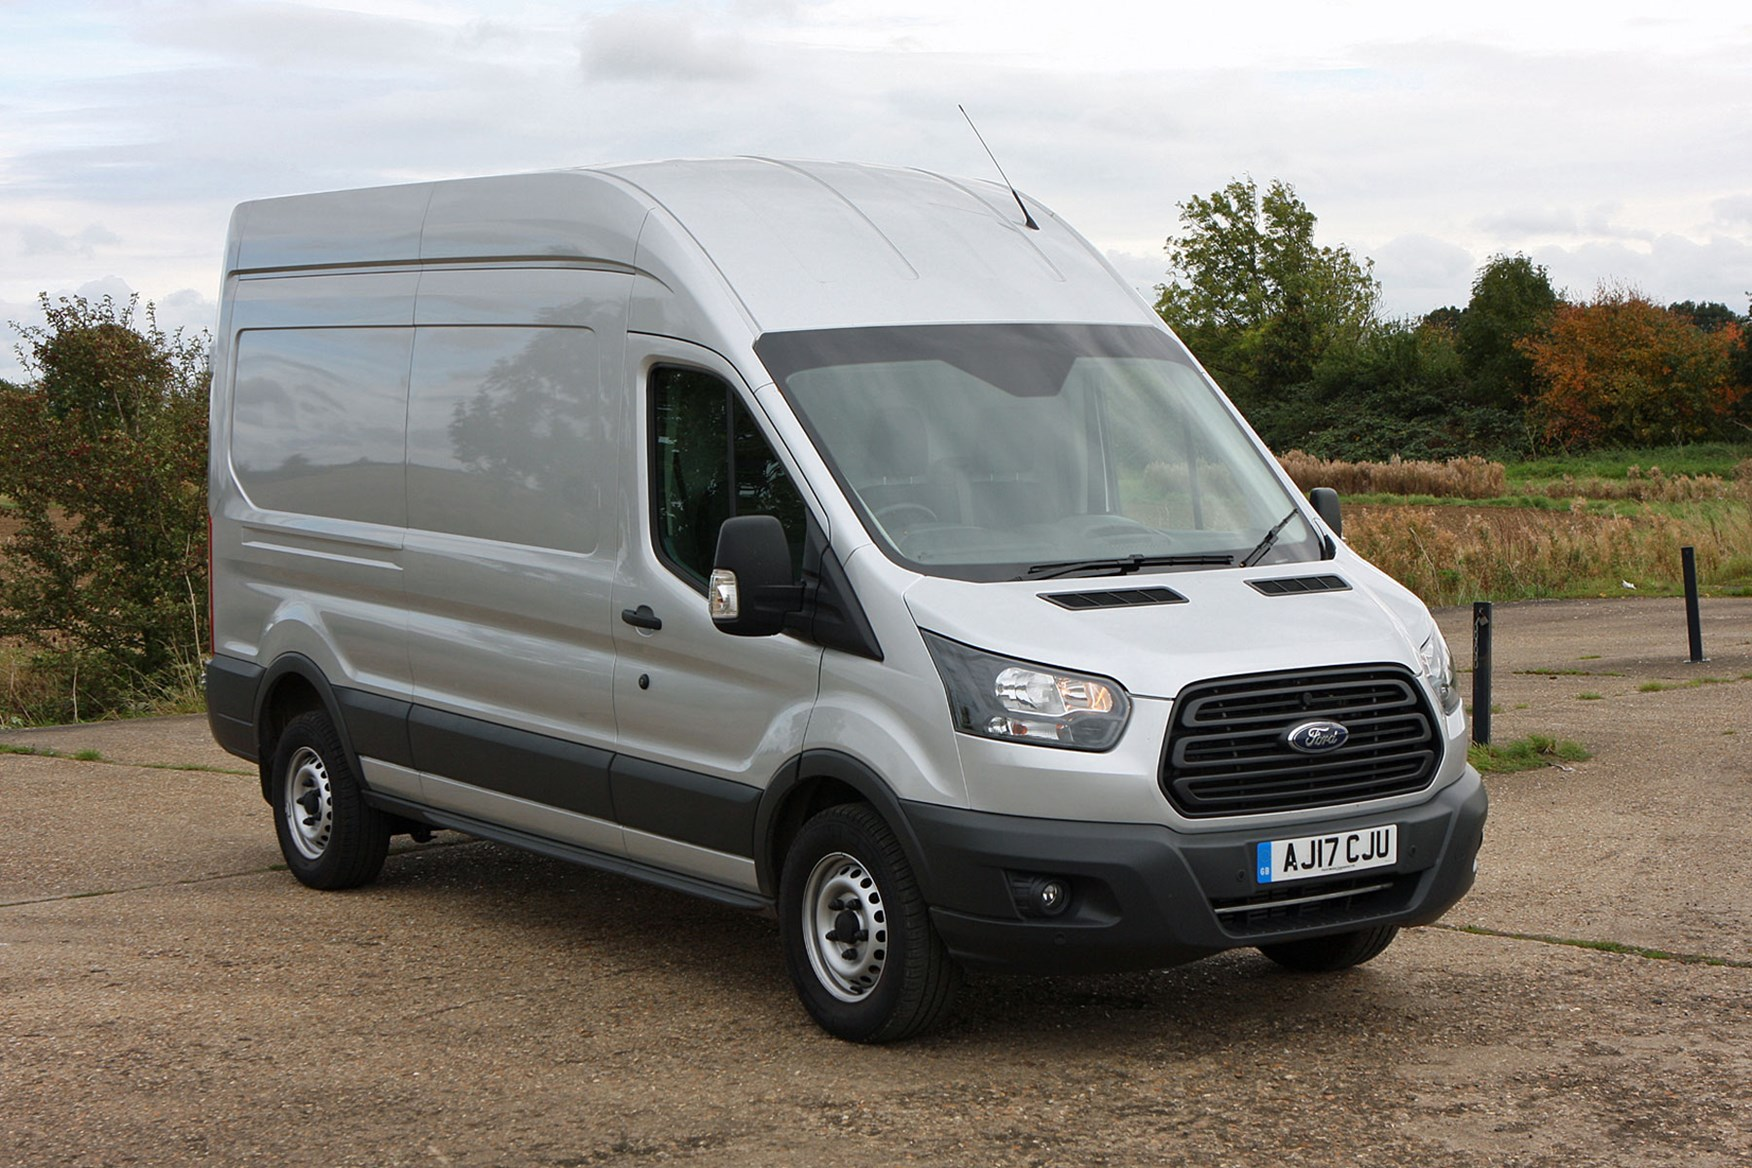 Ford Transit (2014-on) Base model front